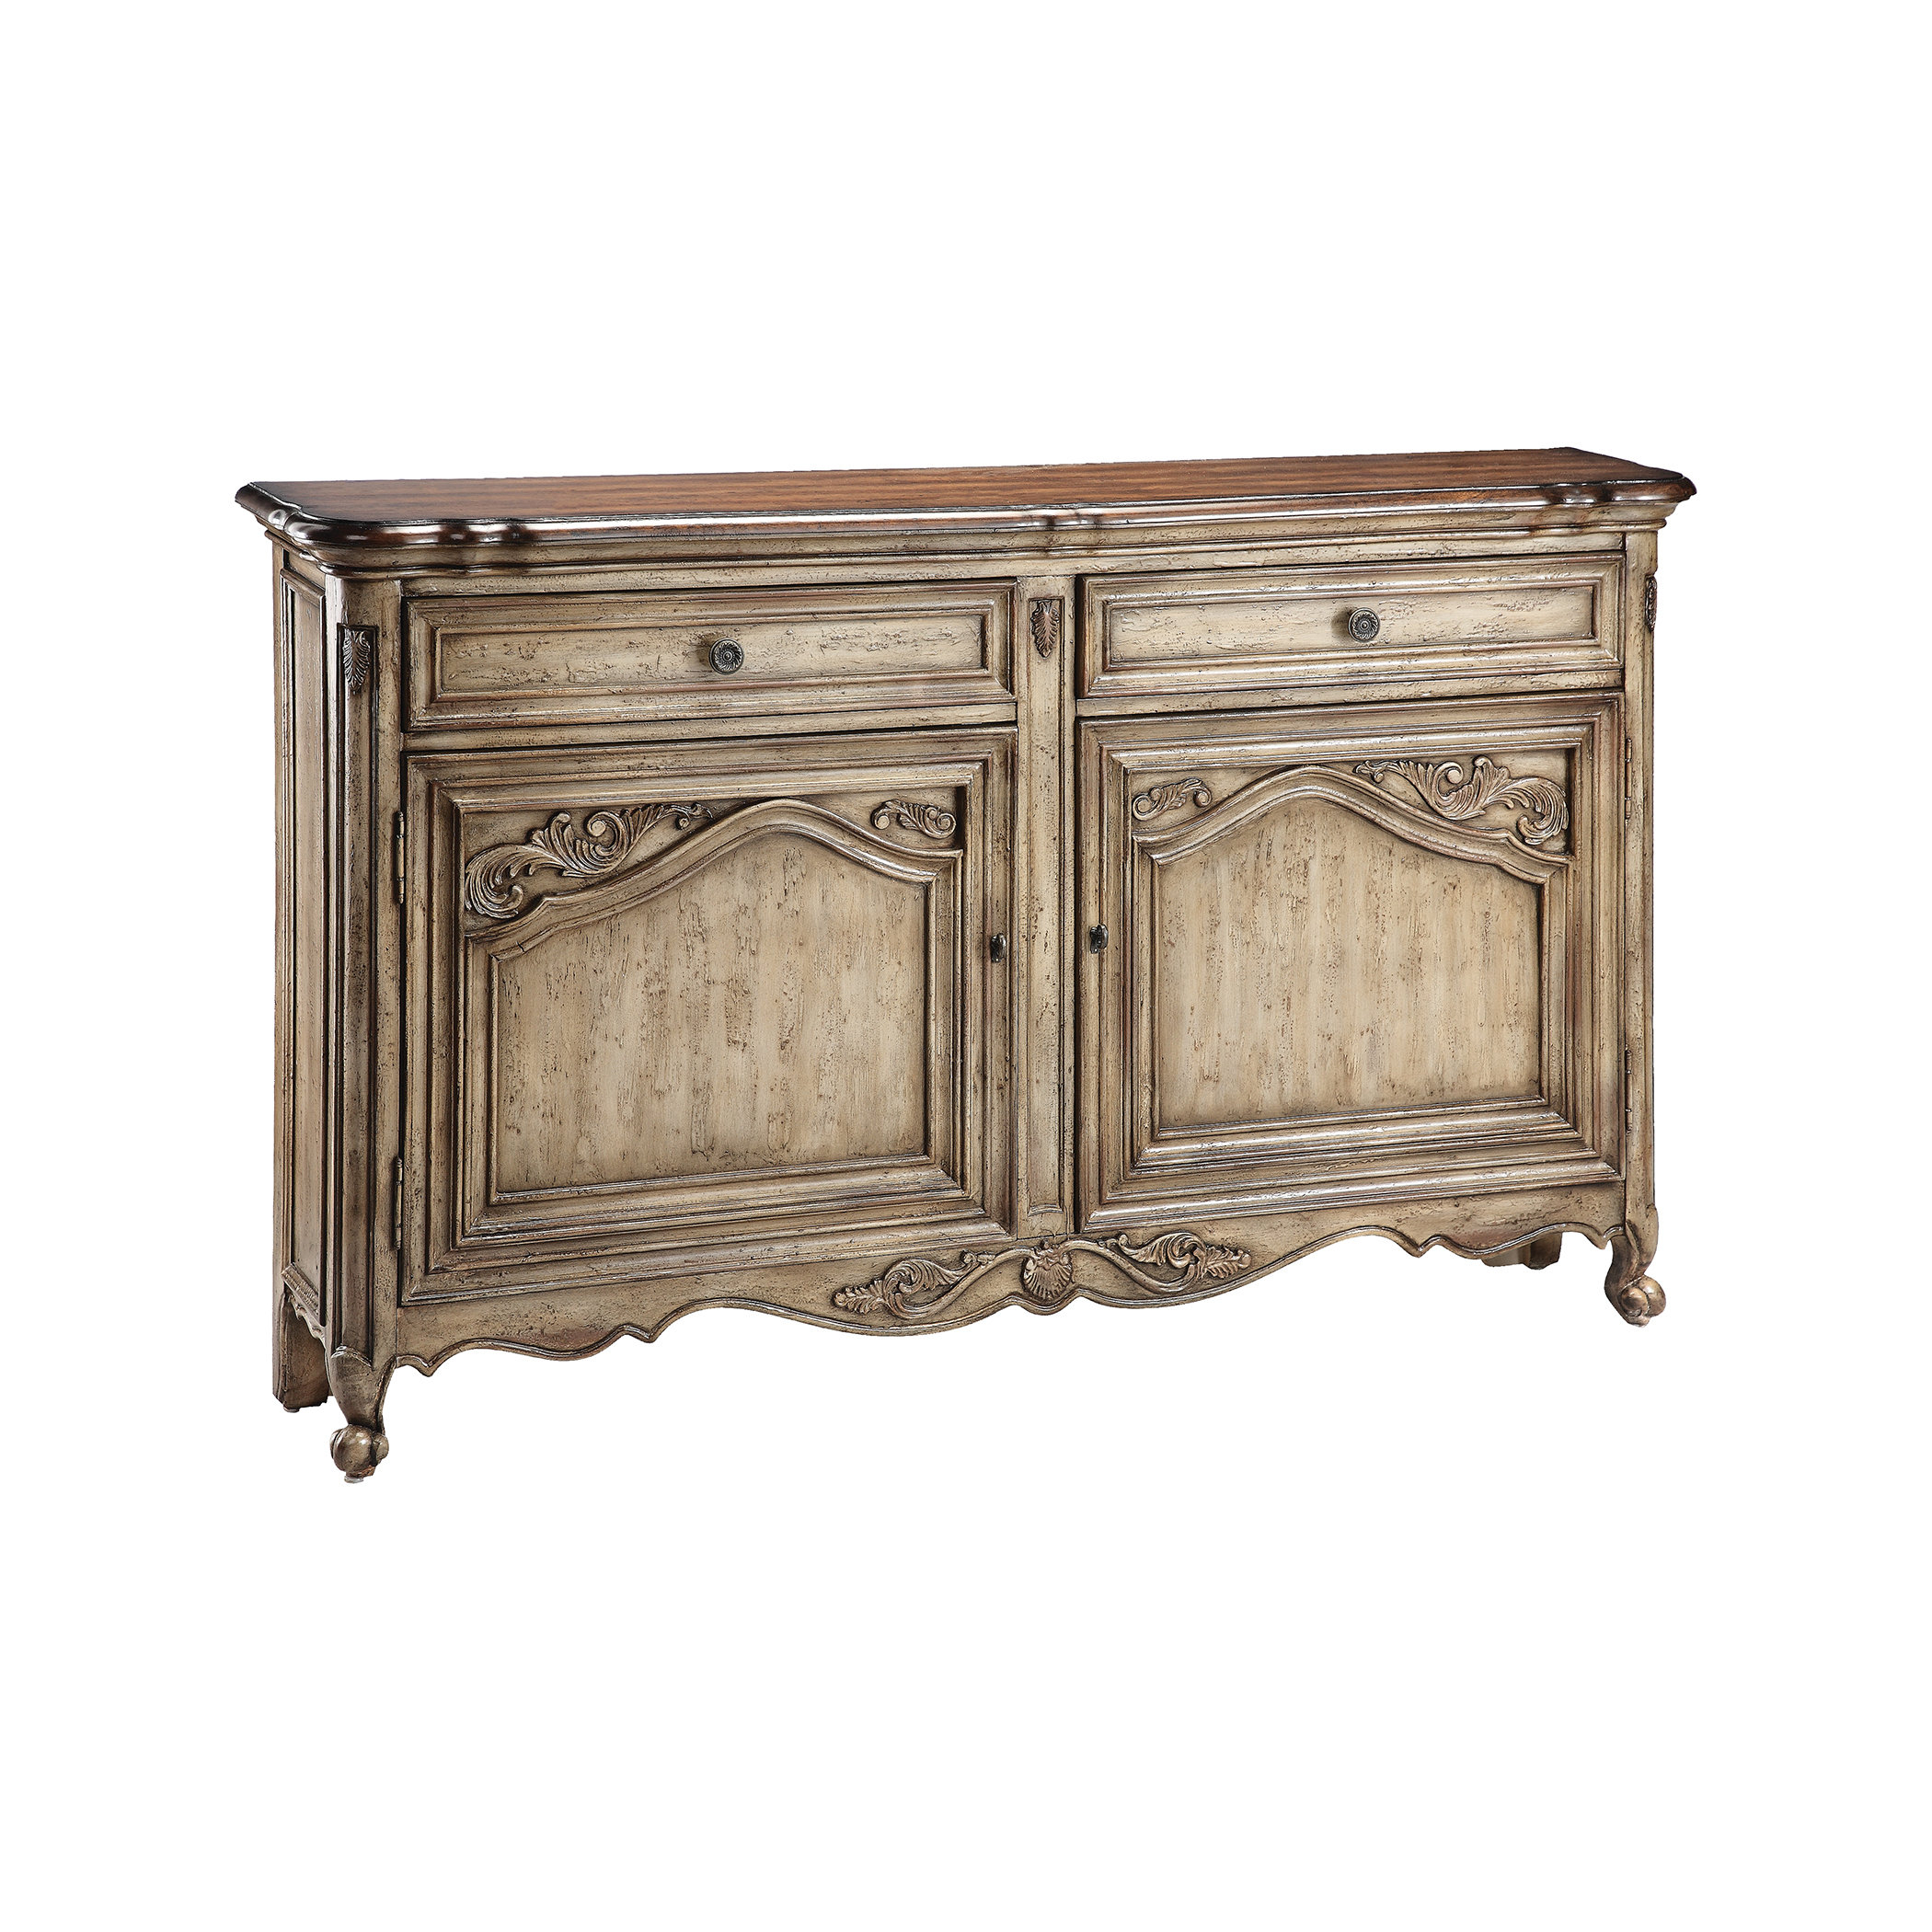 Darby Home Co Dormer Sideboard Regarding Most Up To Date Hewlett Sideboards (#6 of 20)